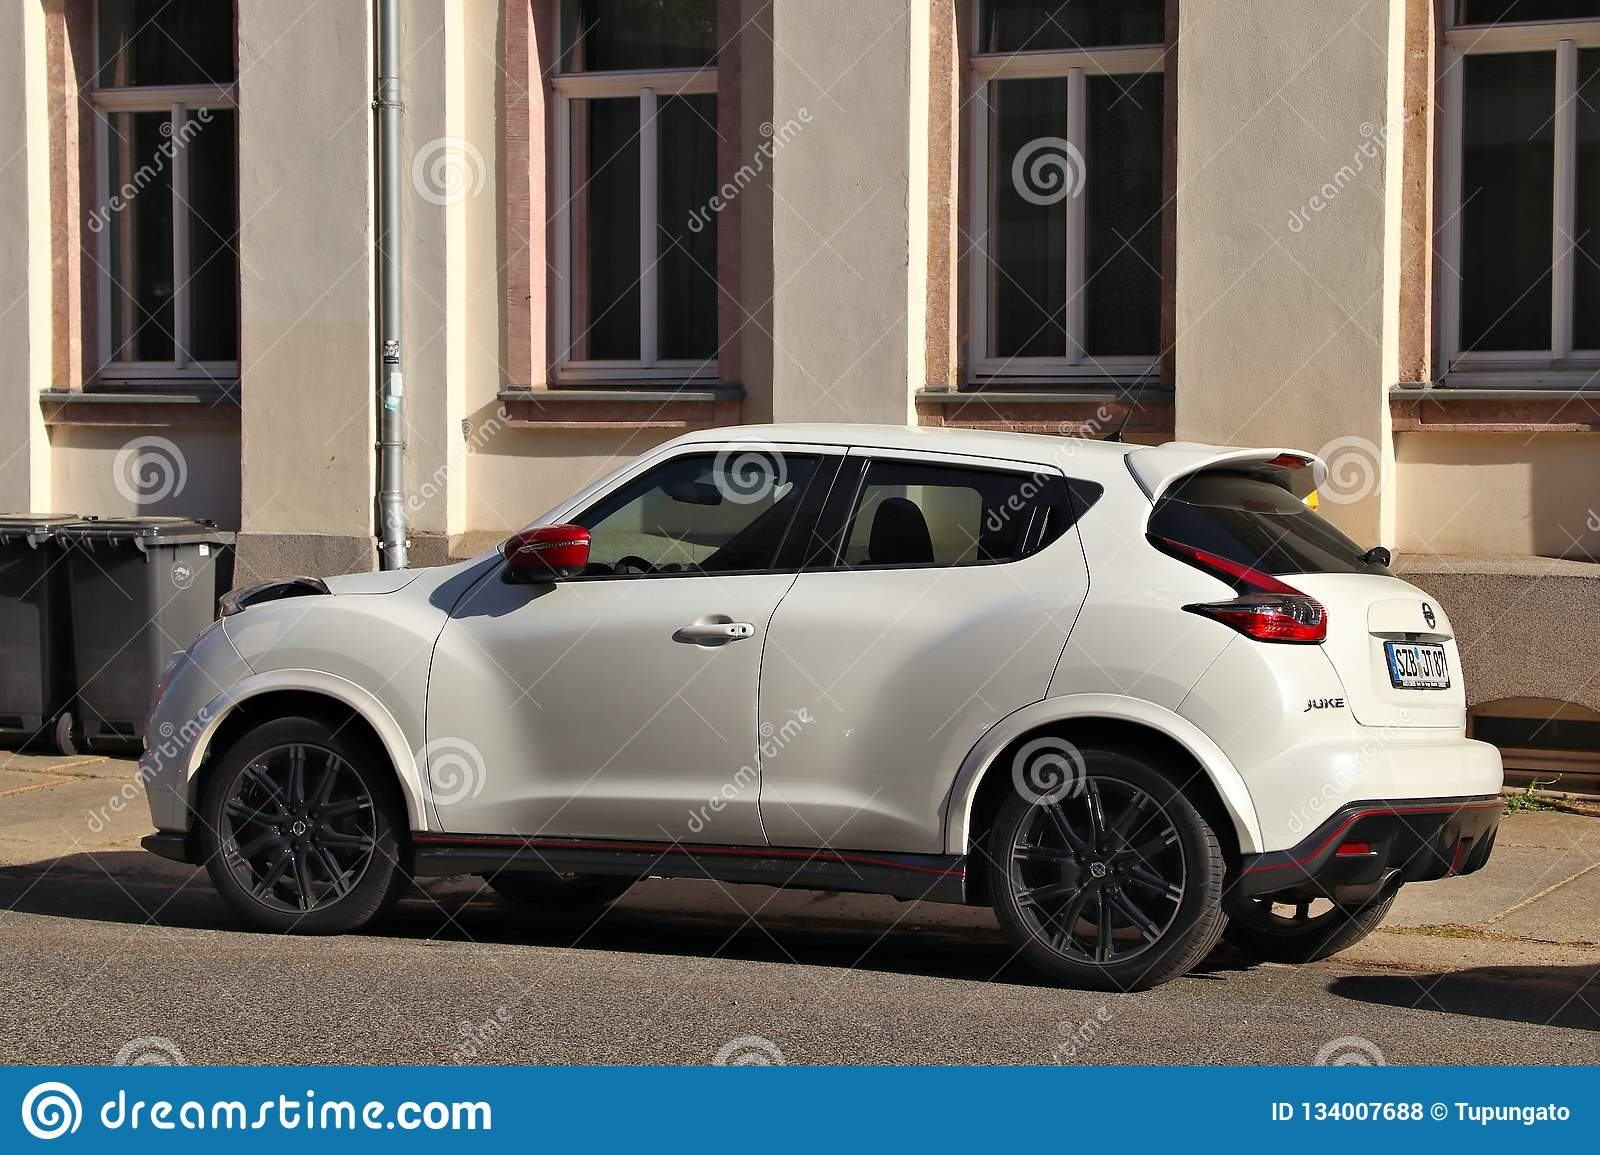 Nissan Crossover Suv Editorial Stock Photo Image Of Crossover 134007688